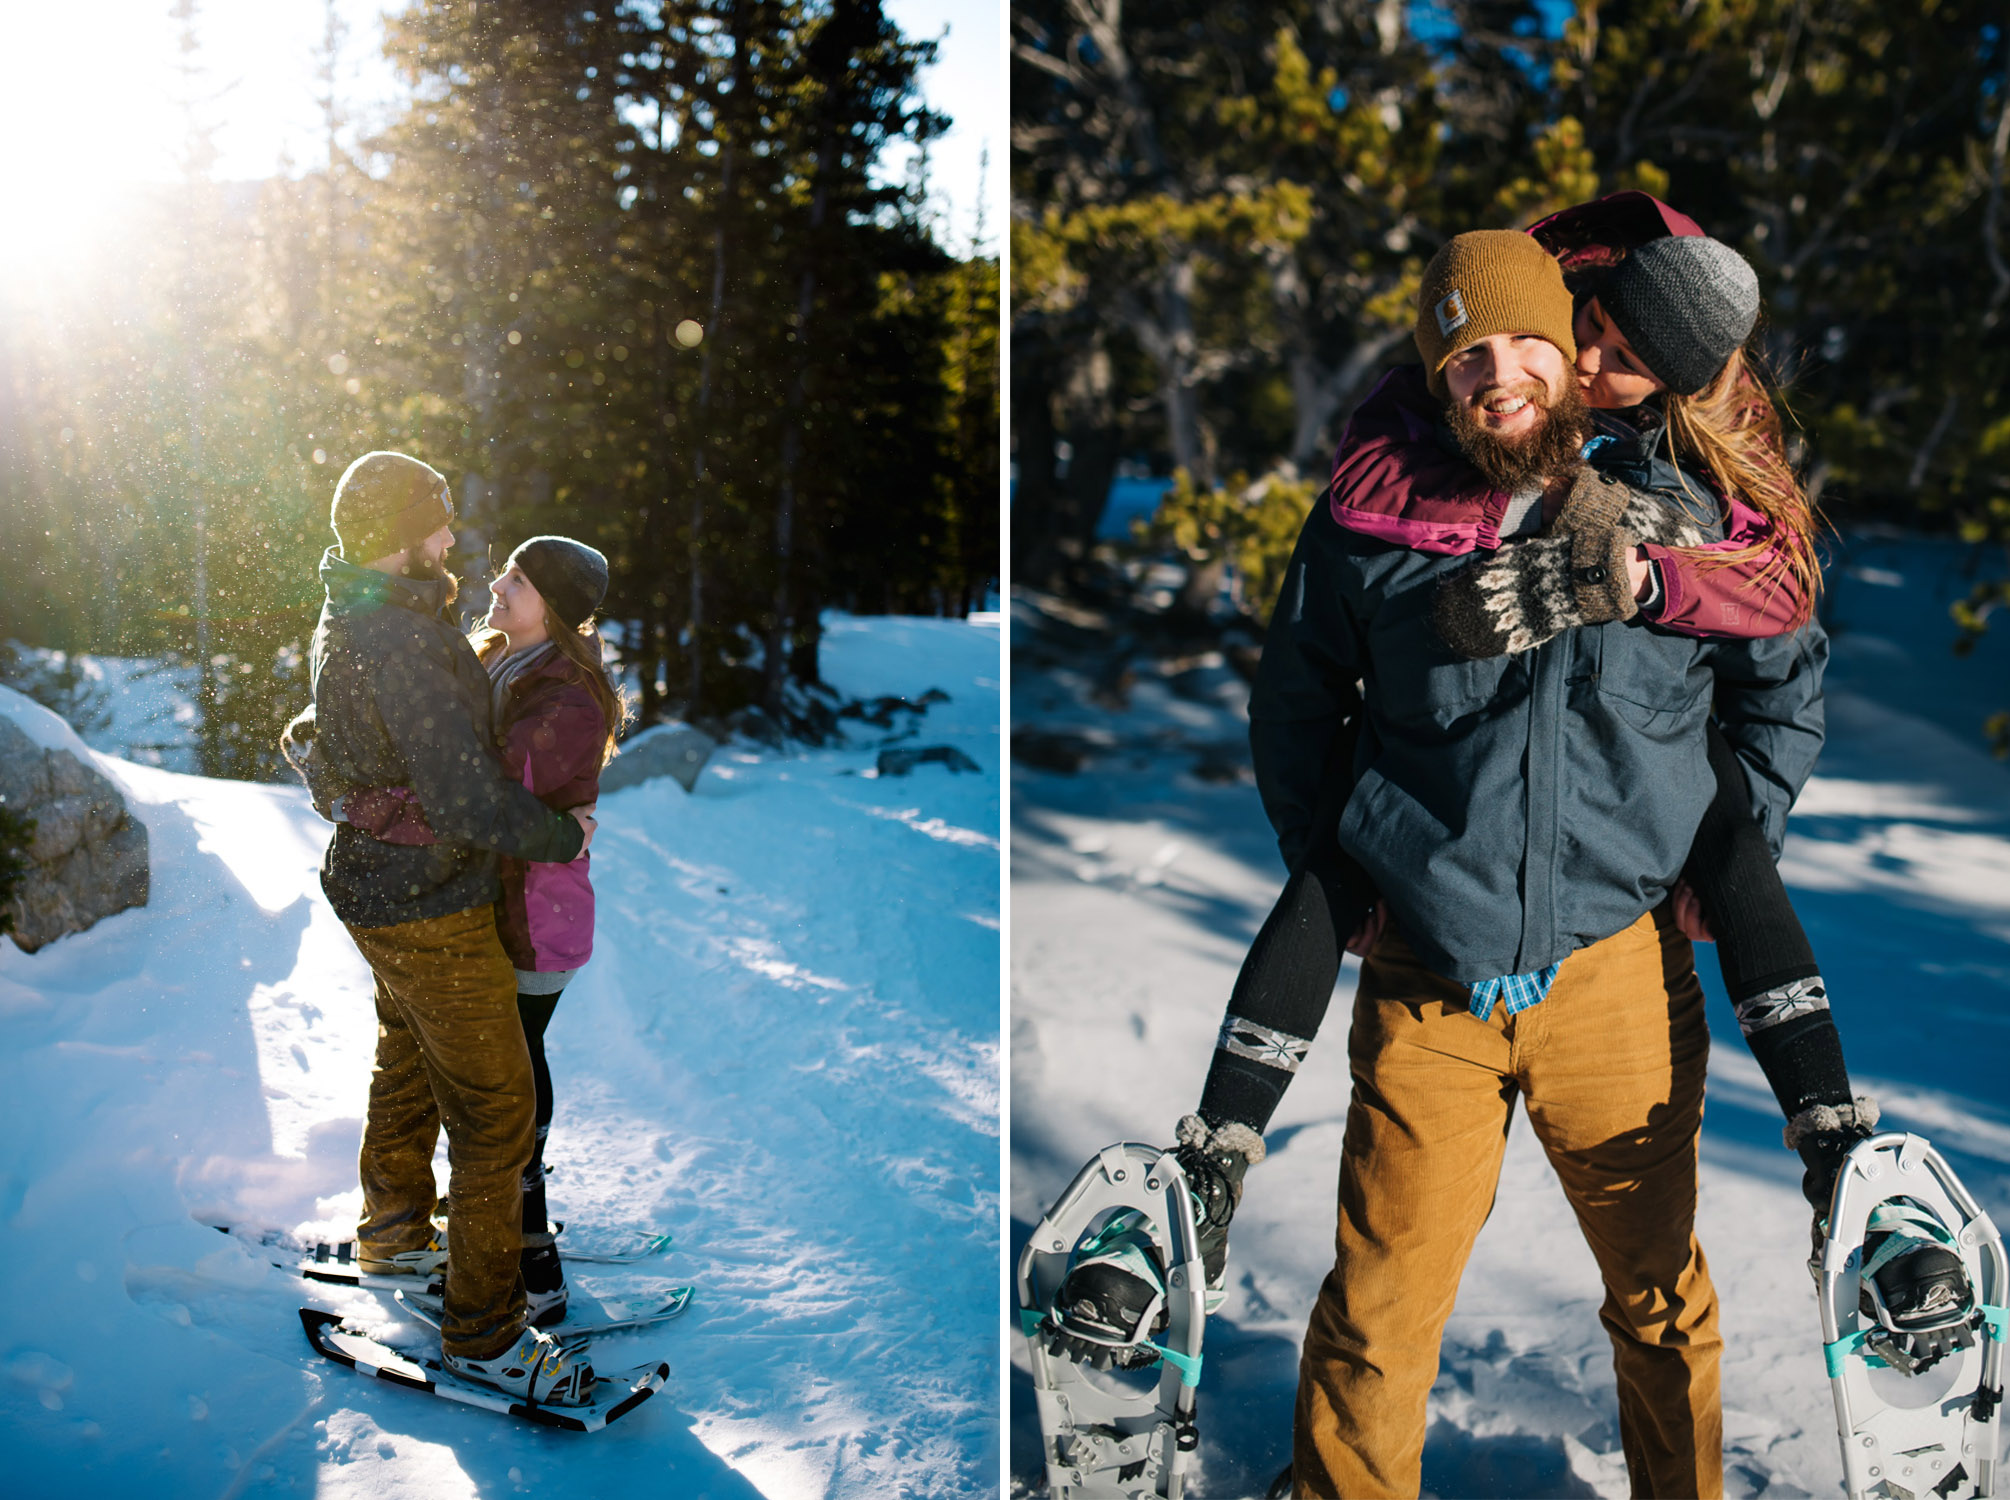 Beautiful winter engagement session in the snowy Colorado mountains by Maddie Mae Photography